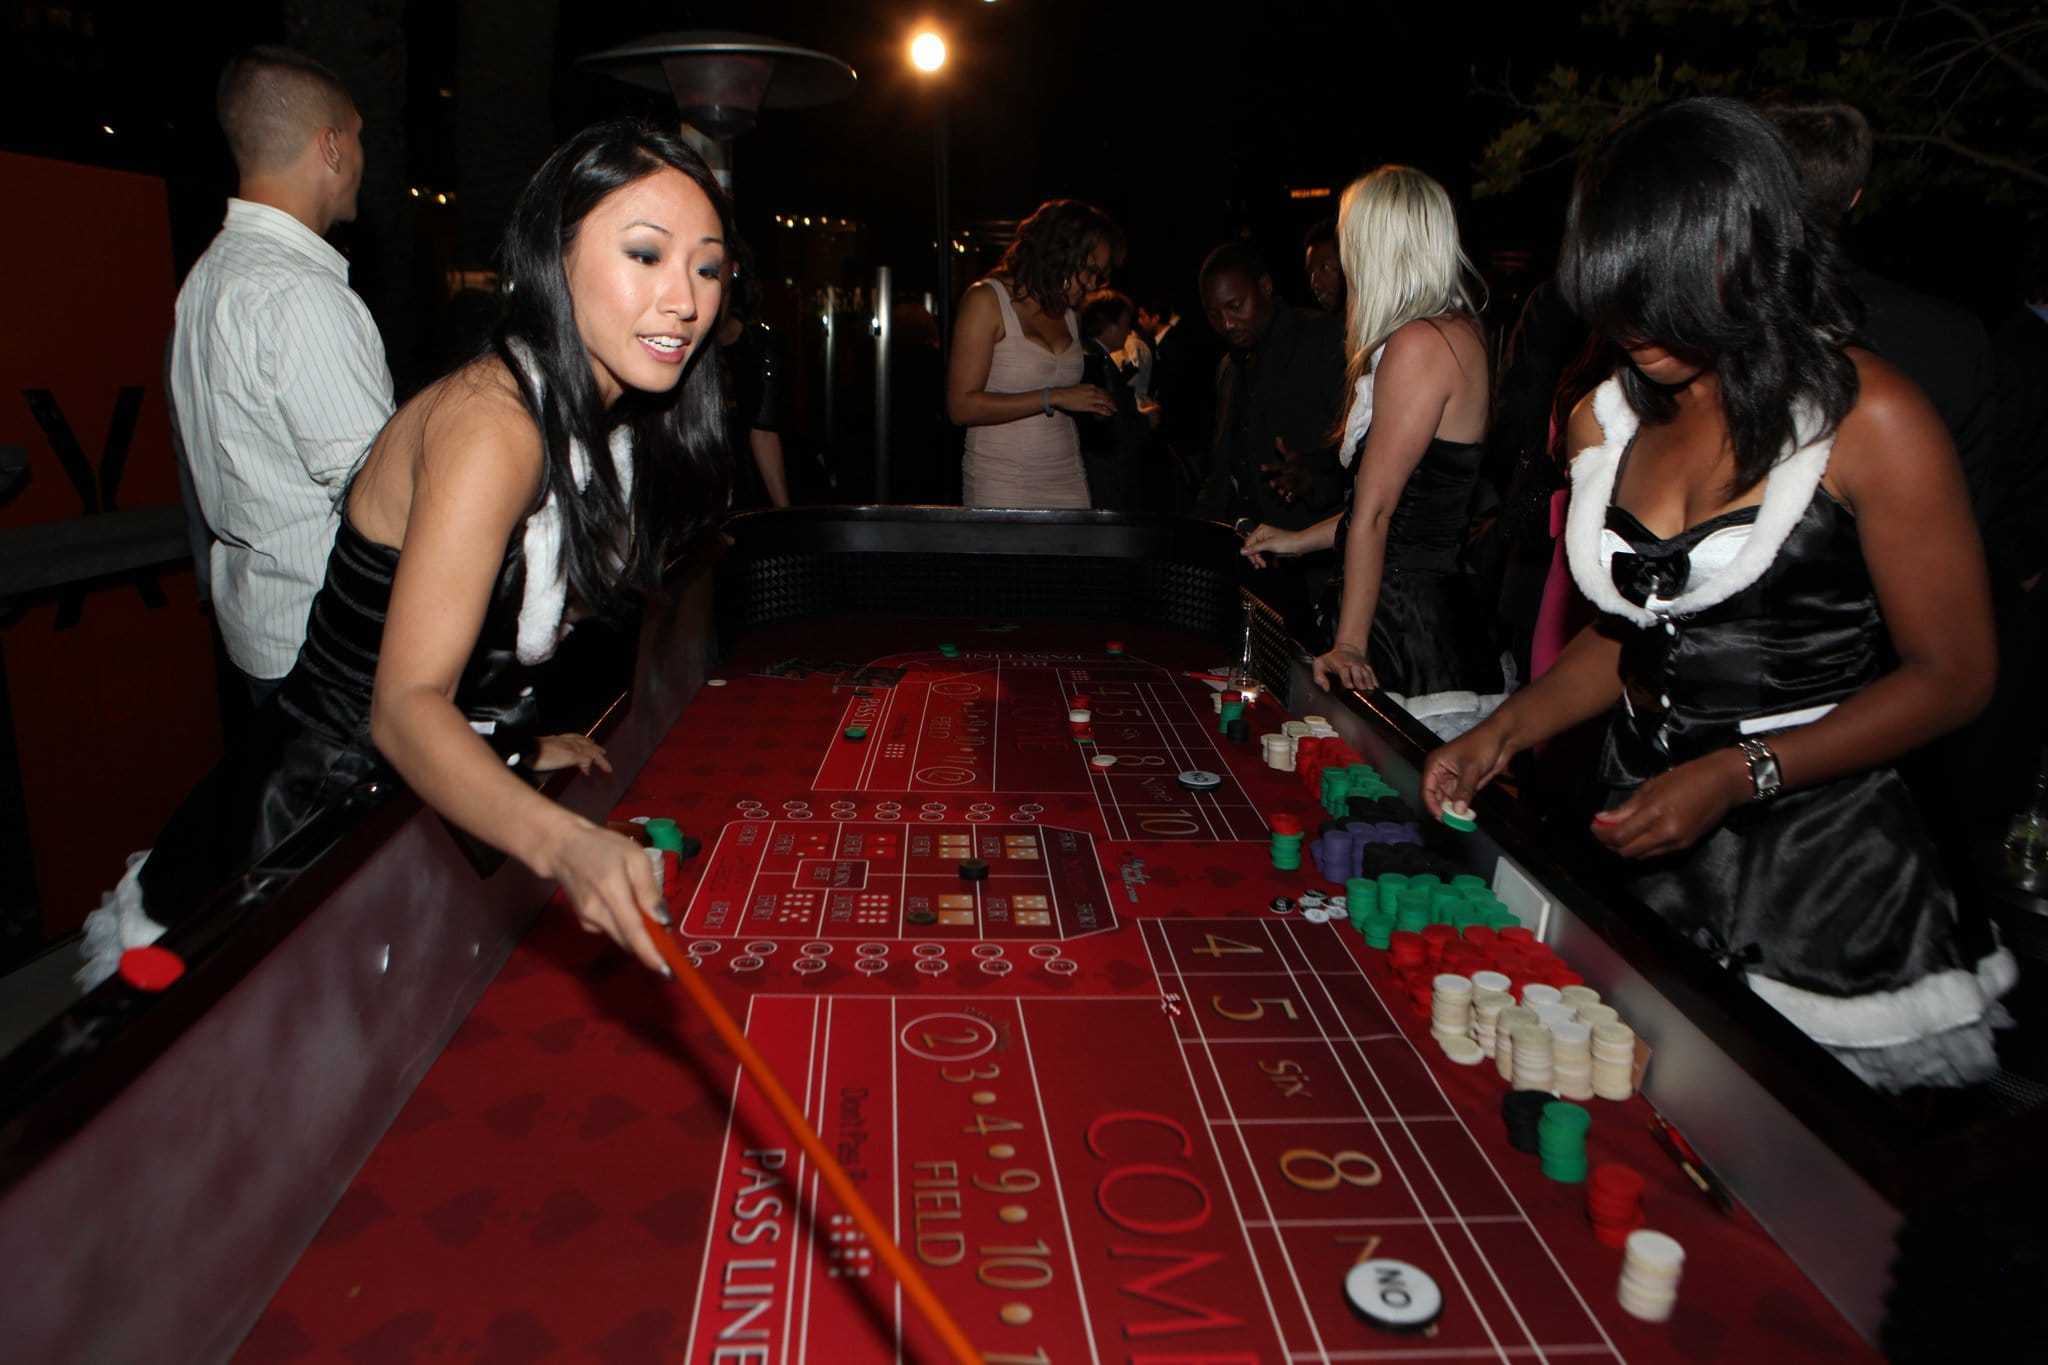 brick and mortas casino craps dealers